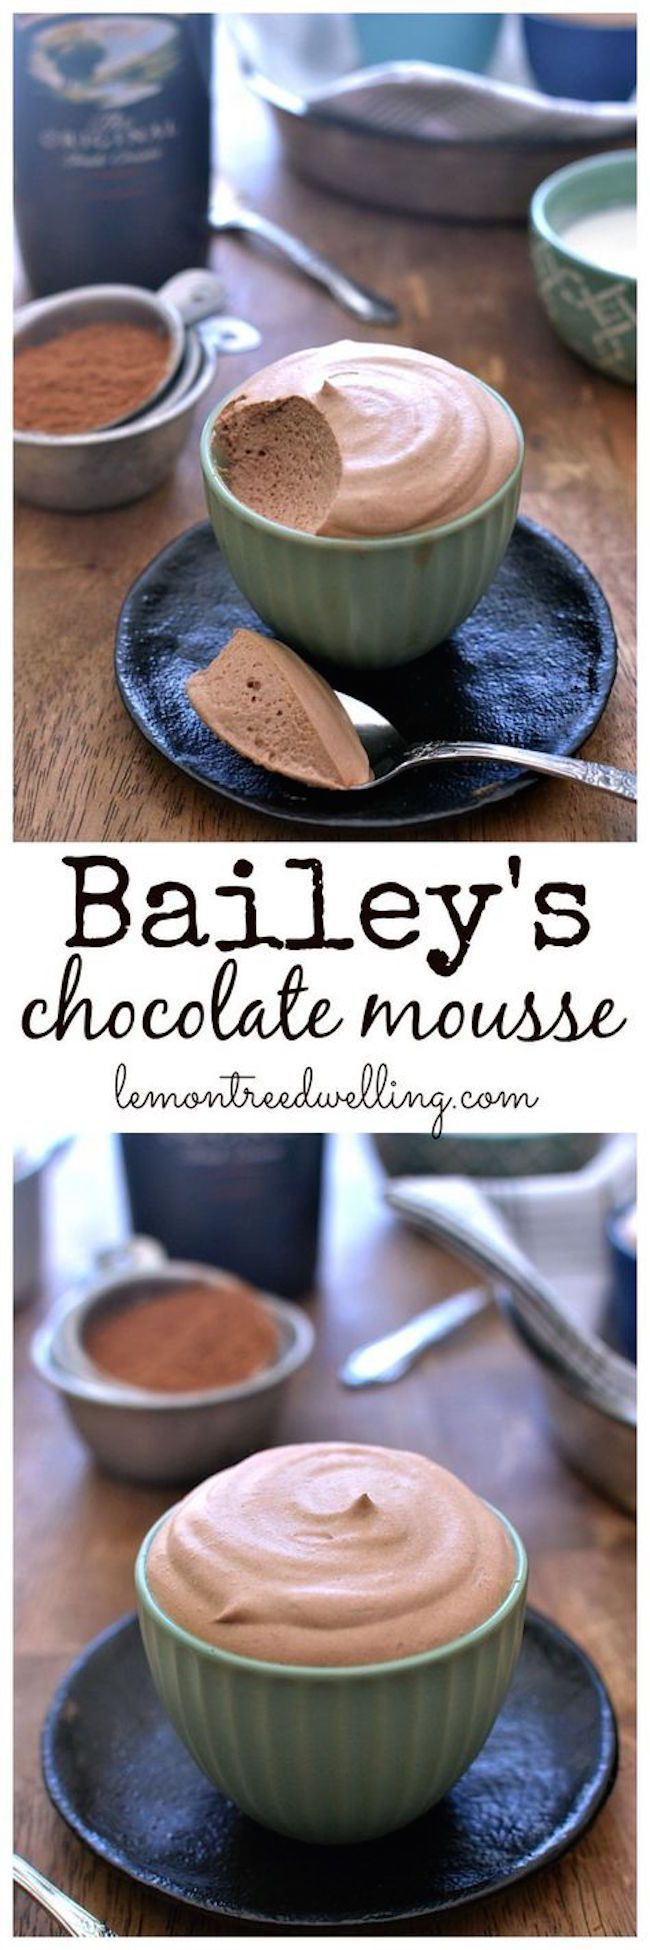 Bailey's chocolate mousse and 10 other of the best Christmas Desserts on Pinterest